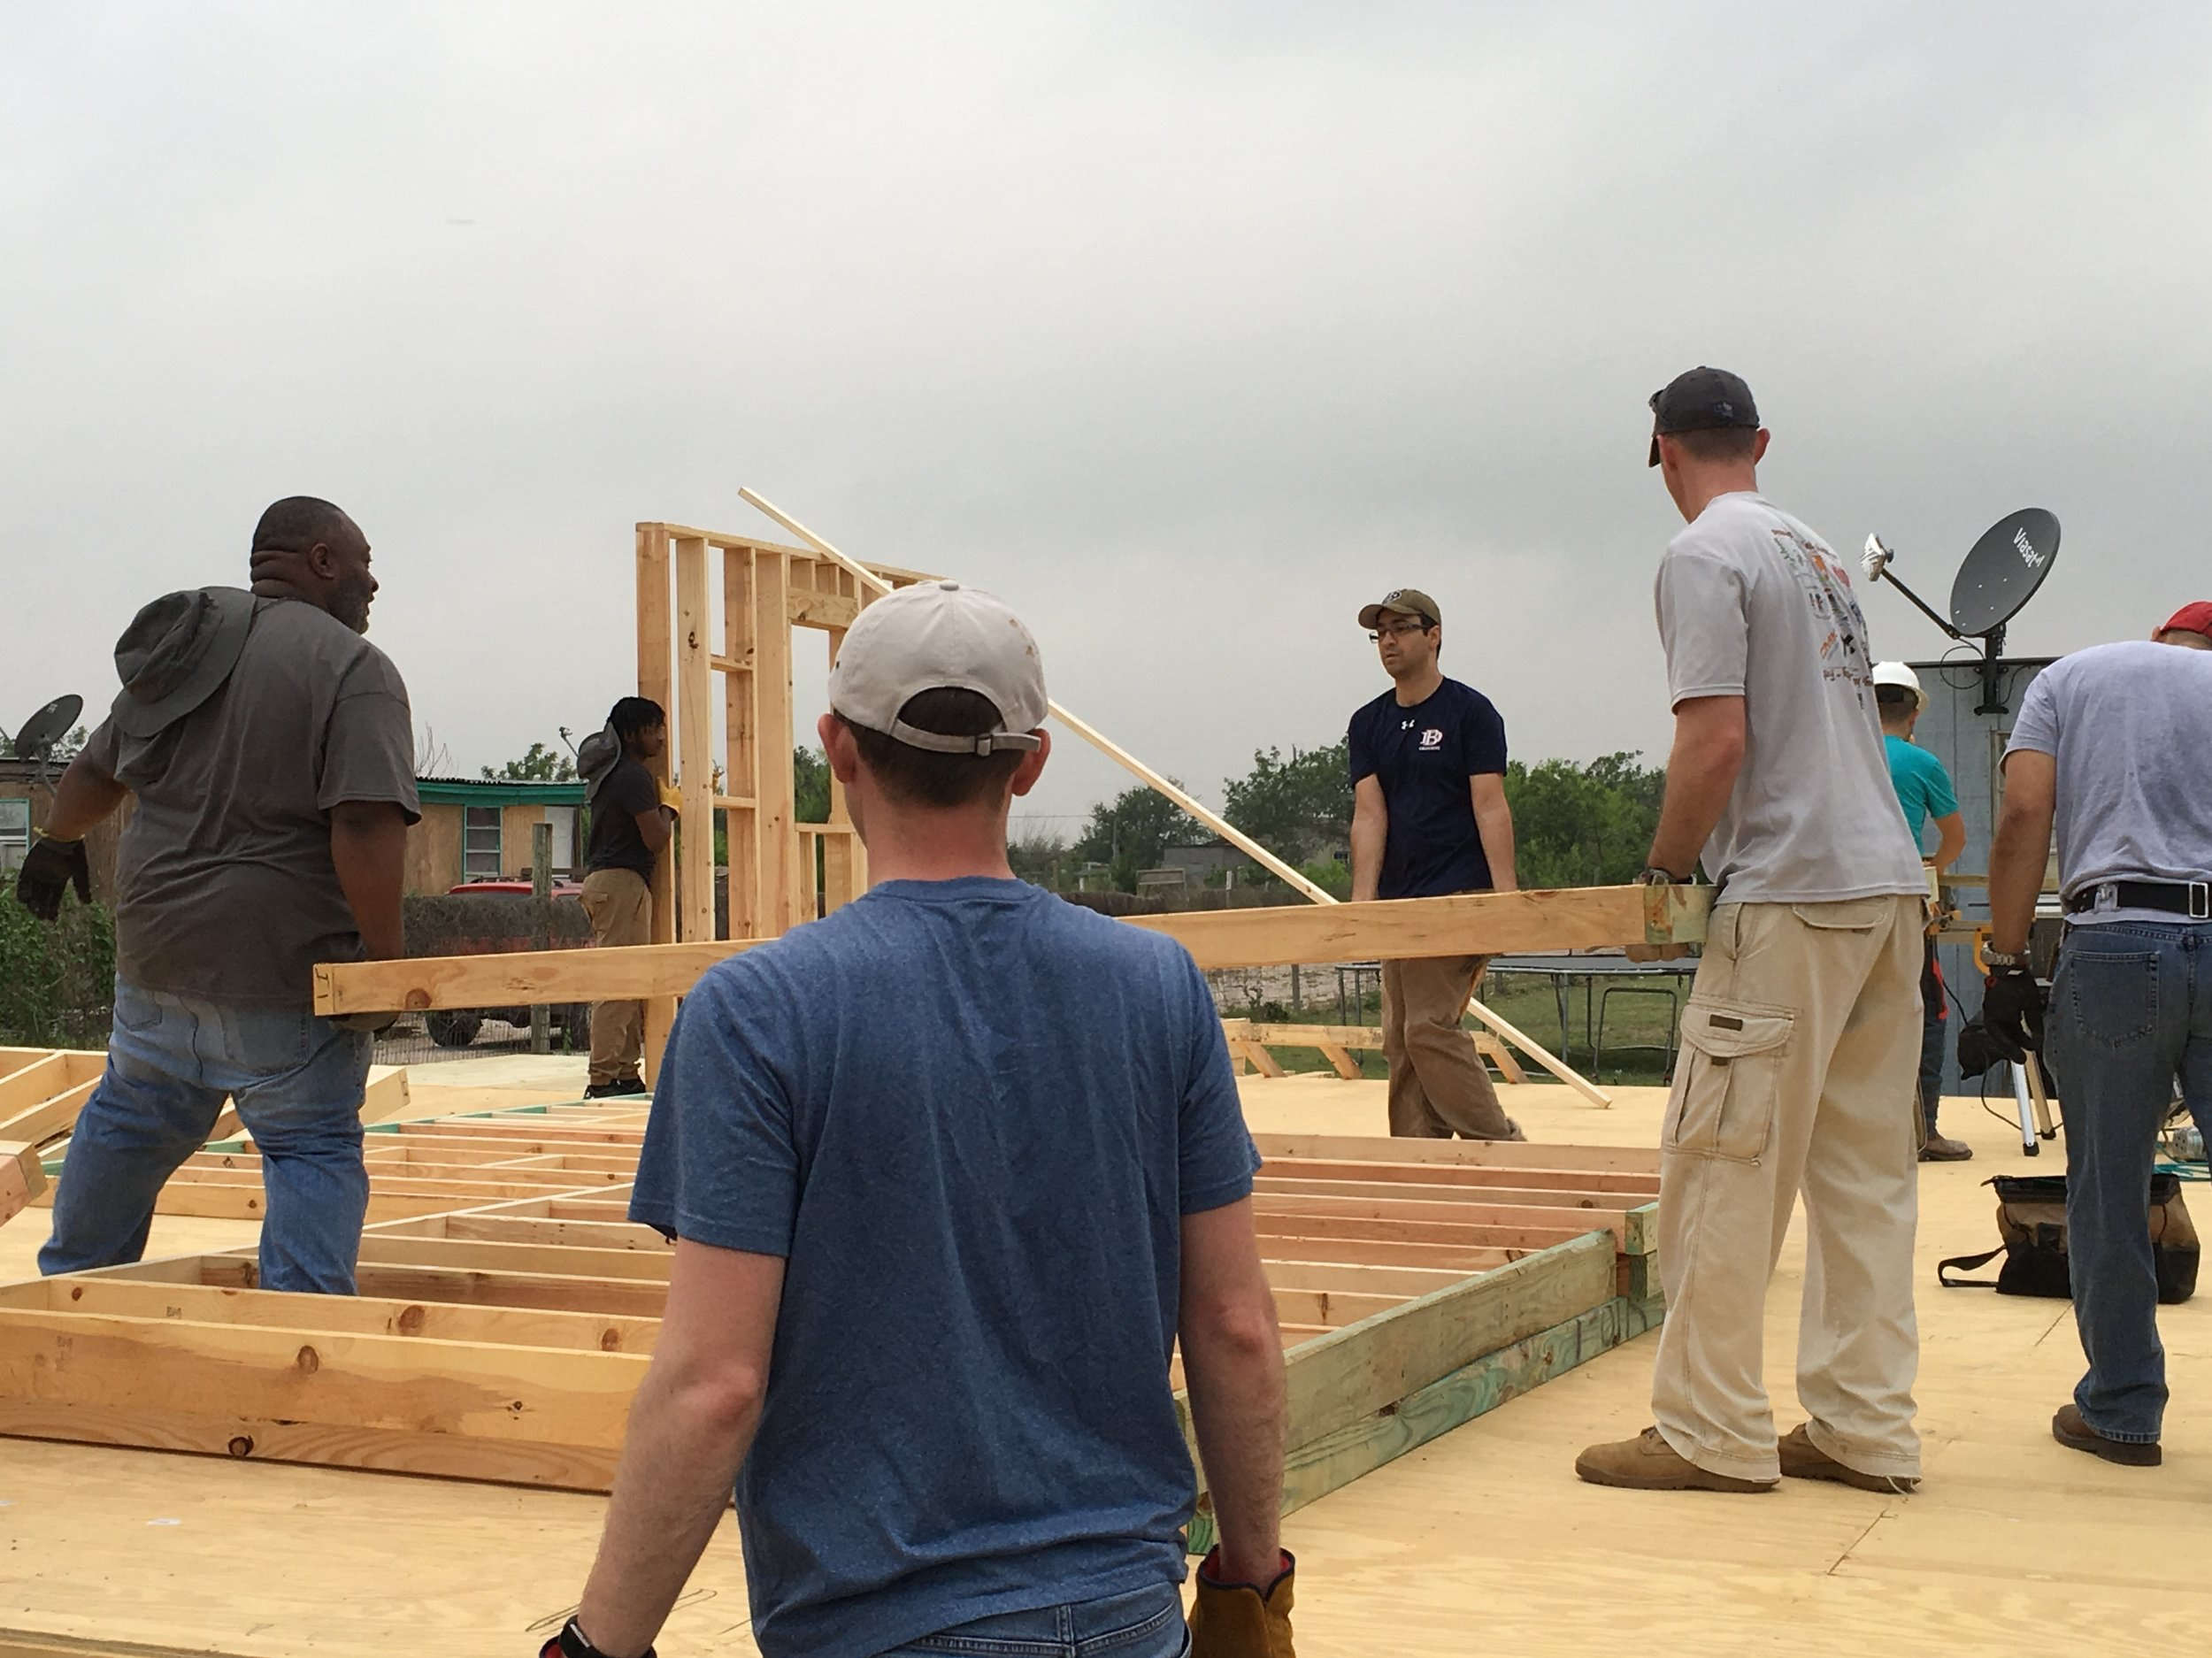 Members of University Baptist Church in Houston and Valley Ranch Baptist Church in Coppell, Texas, teamed up to build a home with a family in a colonia in Peñitas, Texas, during spring break week 2019.